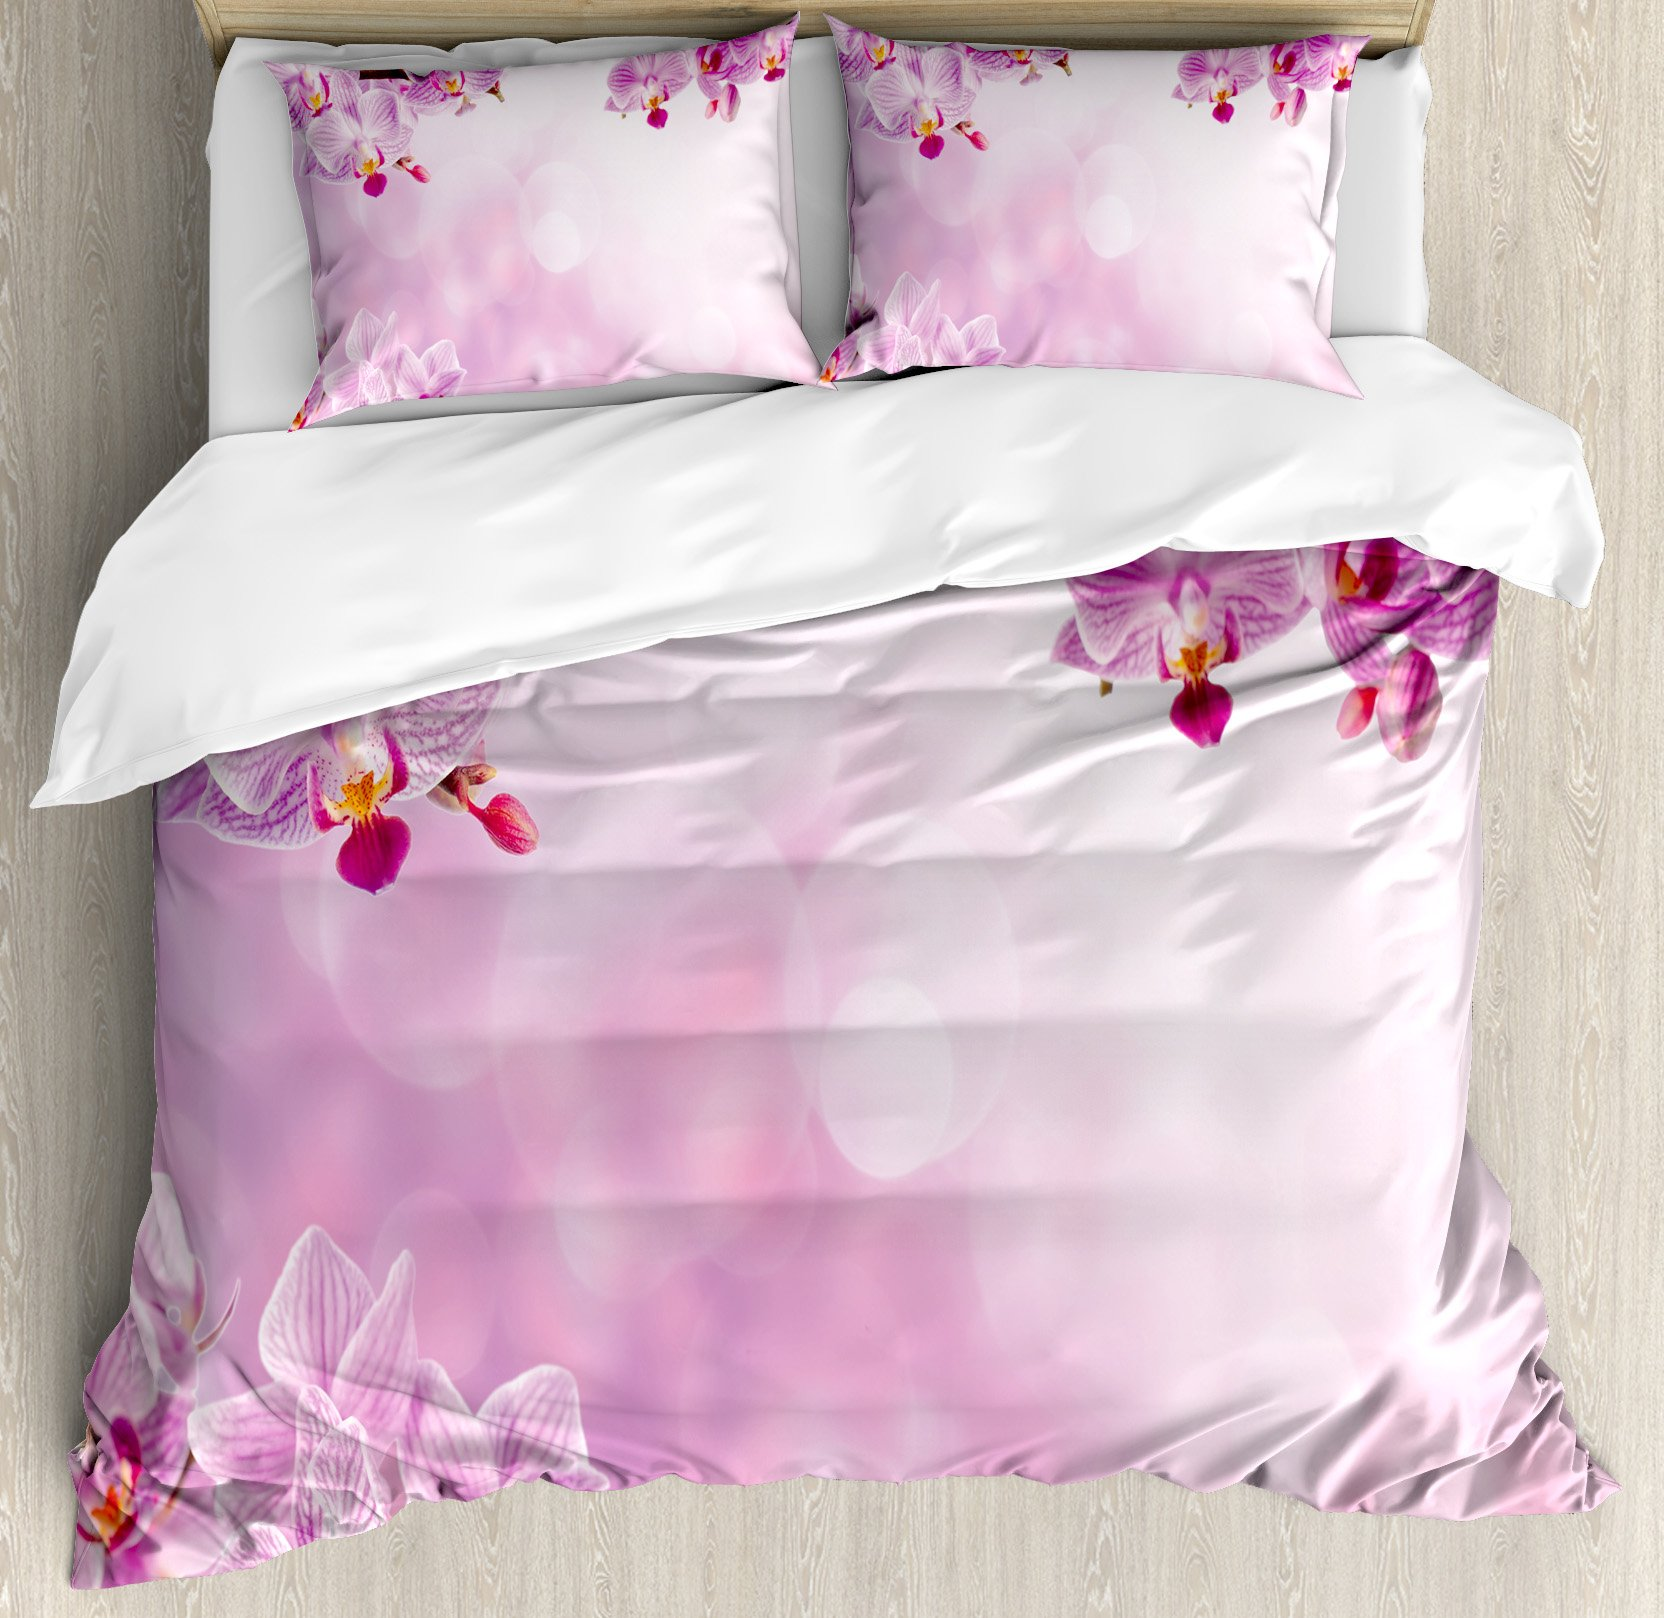 Spa Decor Duvet Cover Set by Ambesonne, Wild Orchid Petals in Monochrome Design Bouquet Spring Bloom Seedling Growth Peaceful Nature Print, 3 Piece Bedding Set with Pillow Shams, Queen / Full, Pink